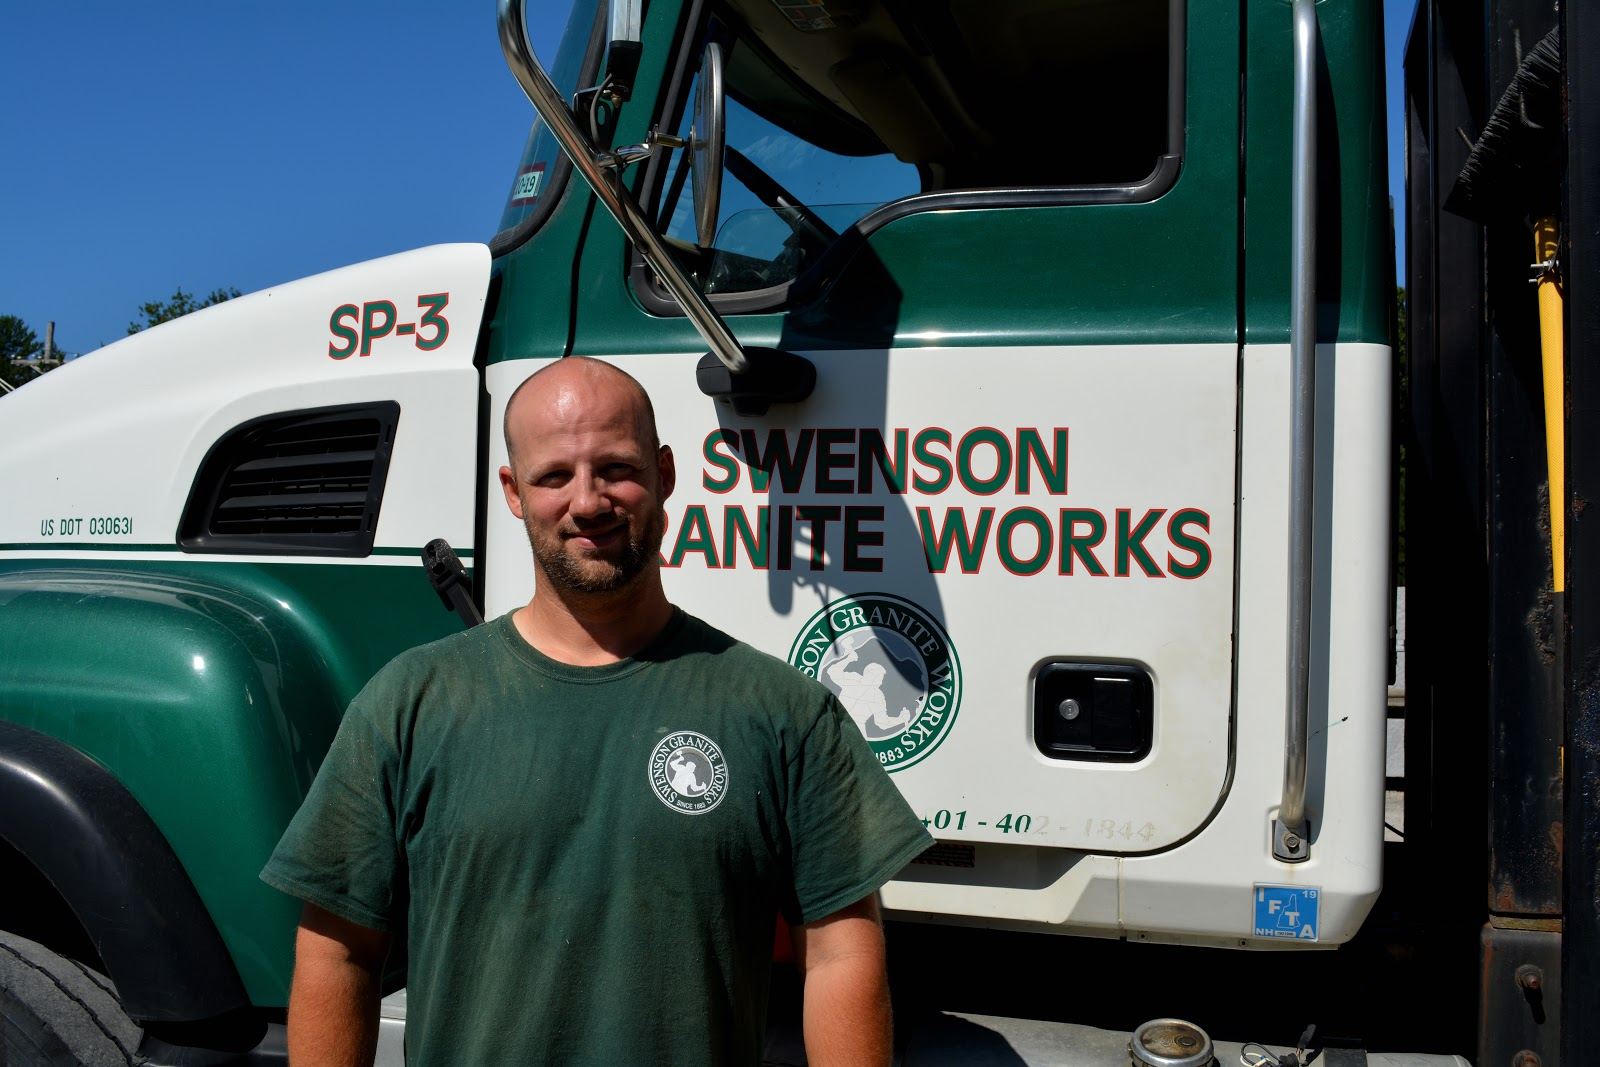 Chuck Marchetti in front of the Swenson Granite Works truck